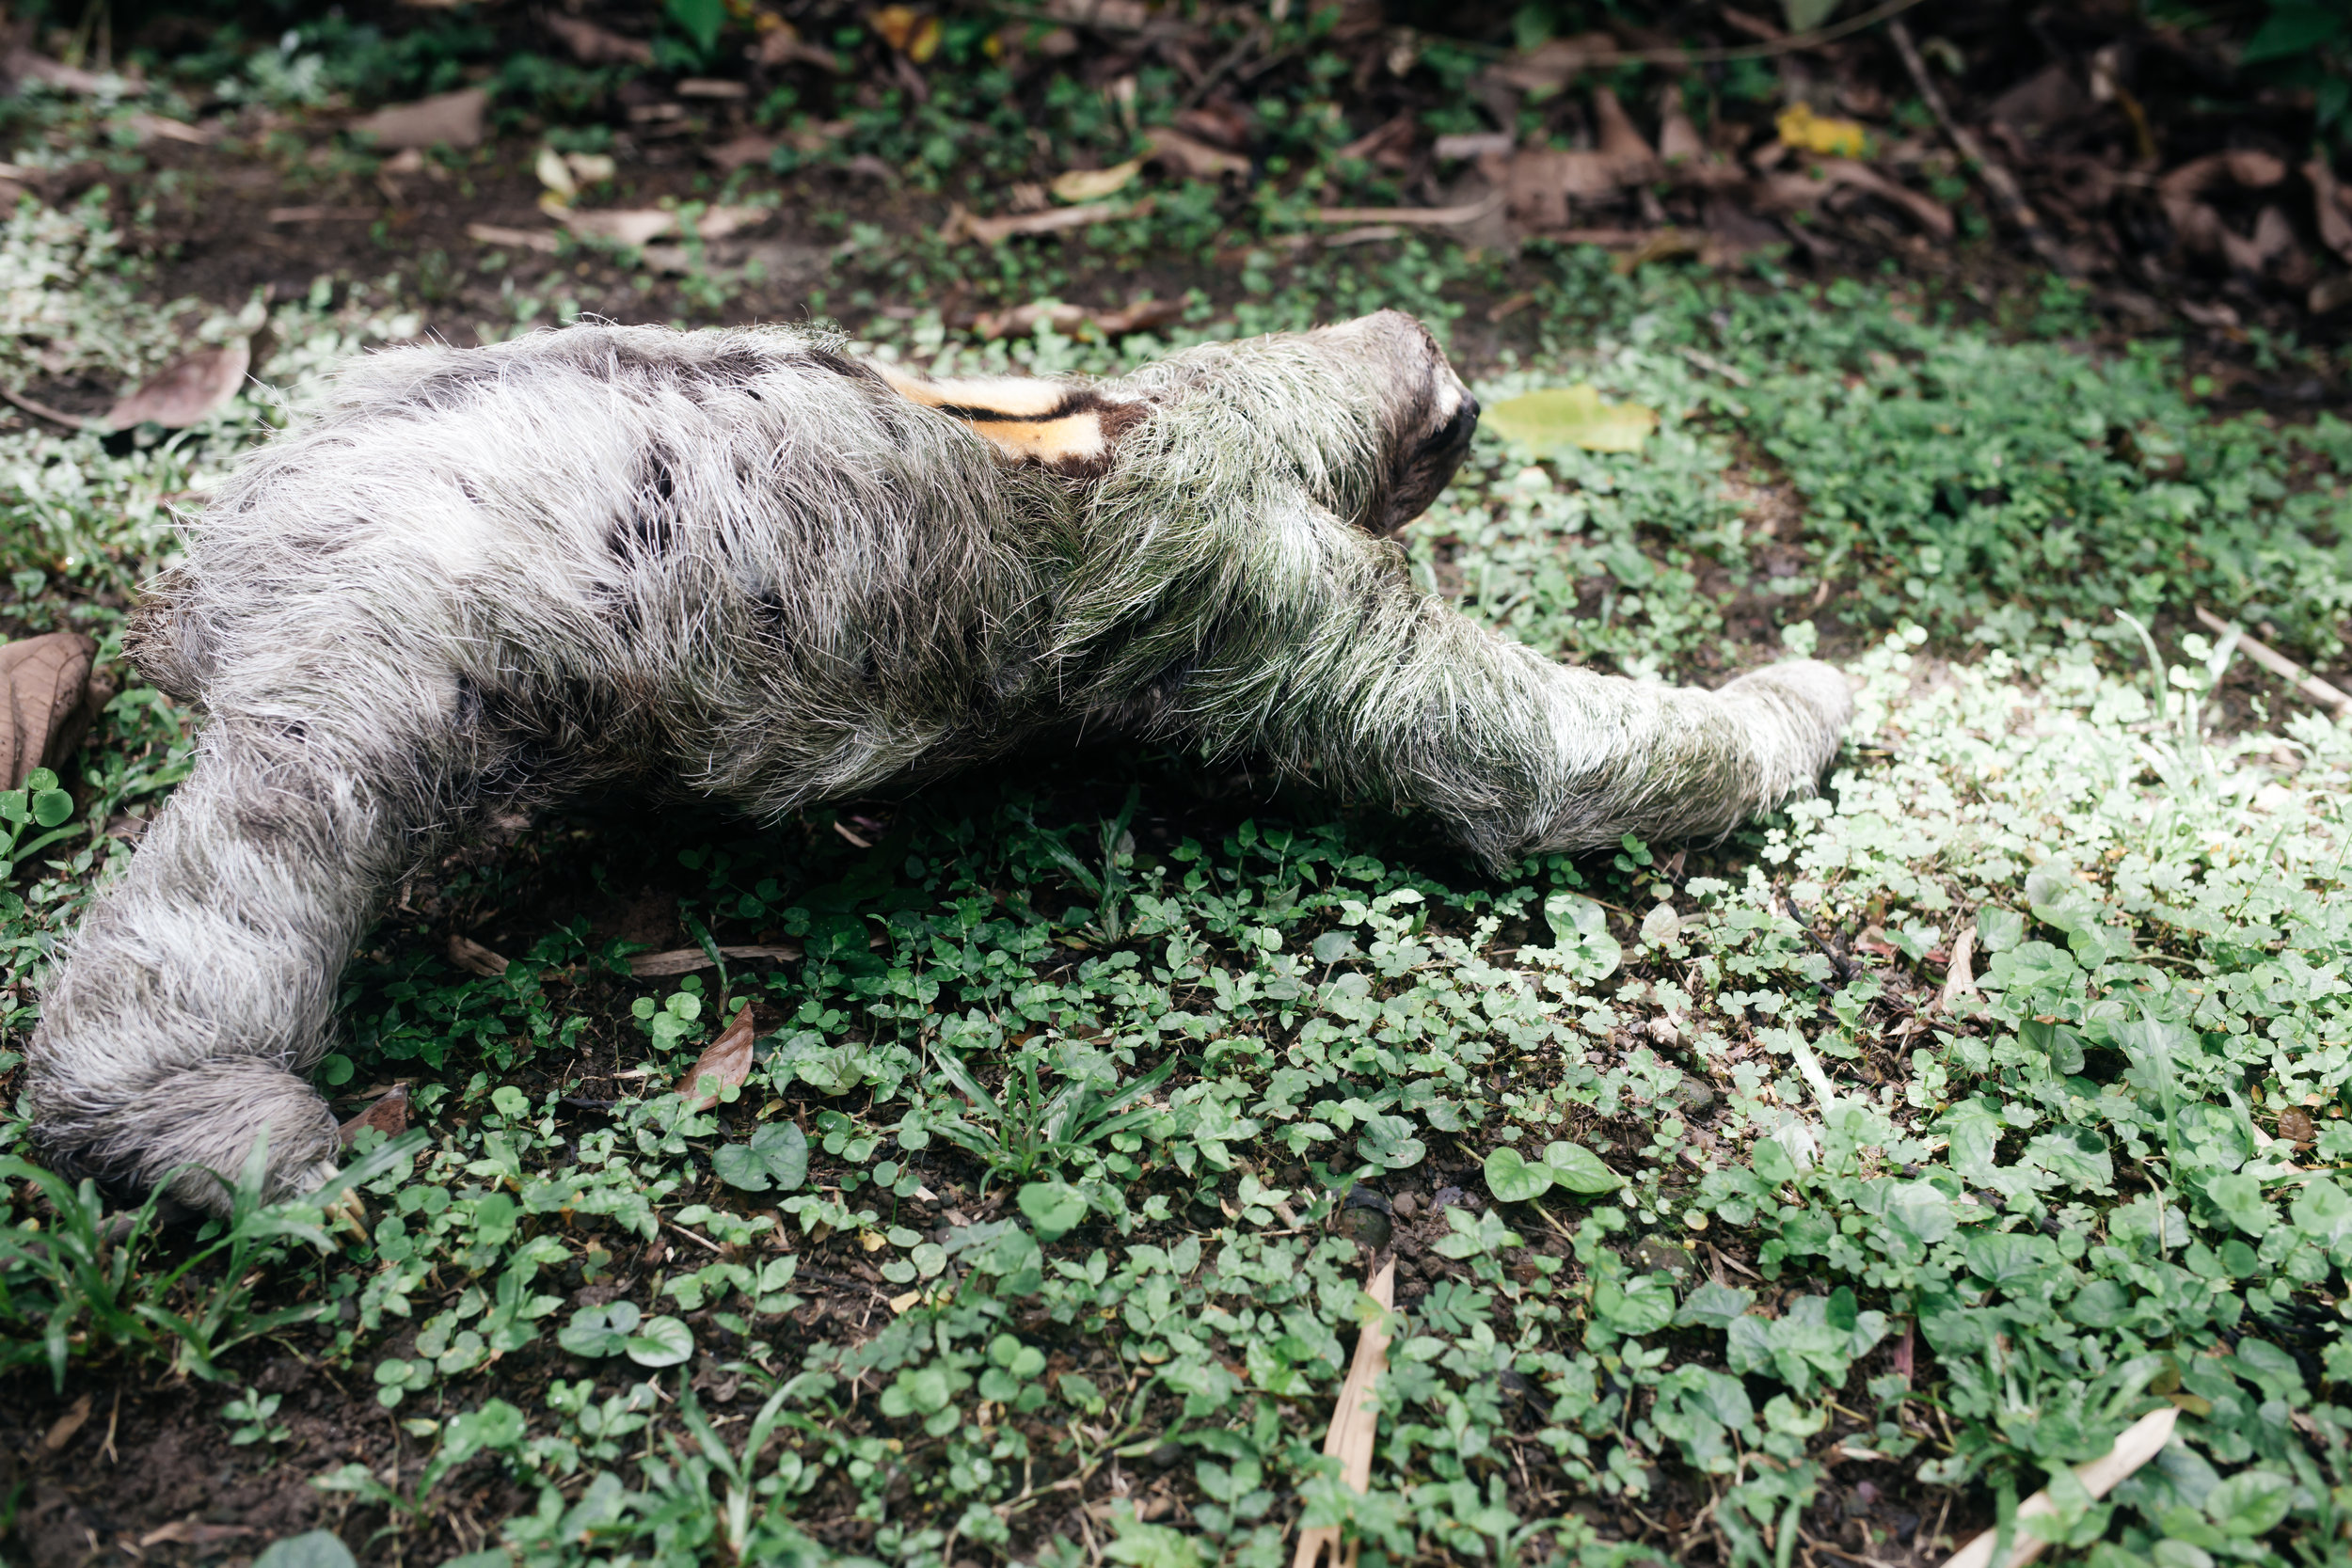 costarica_airbnb_sloth (40 of 49).jpg